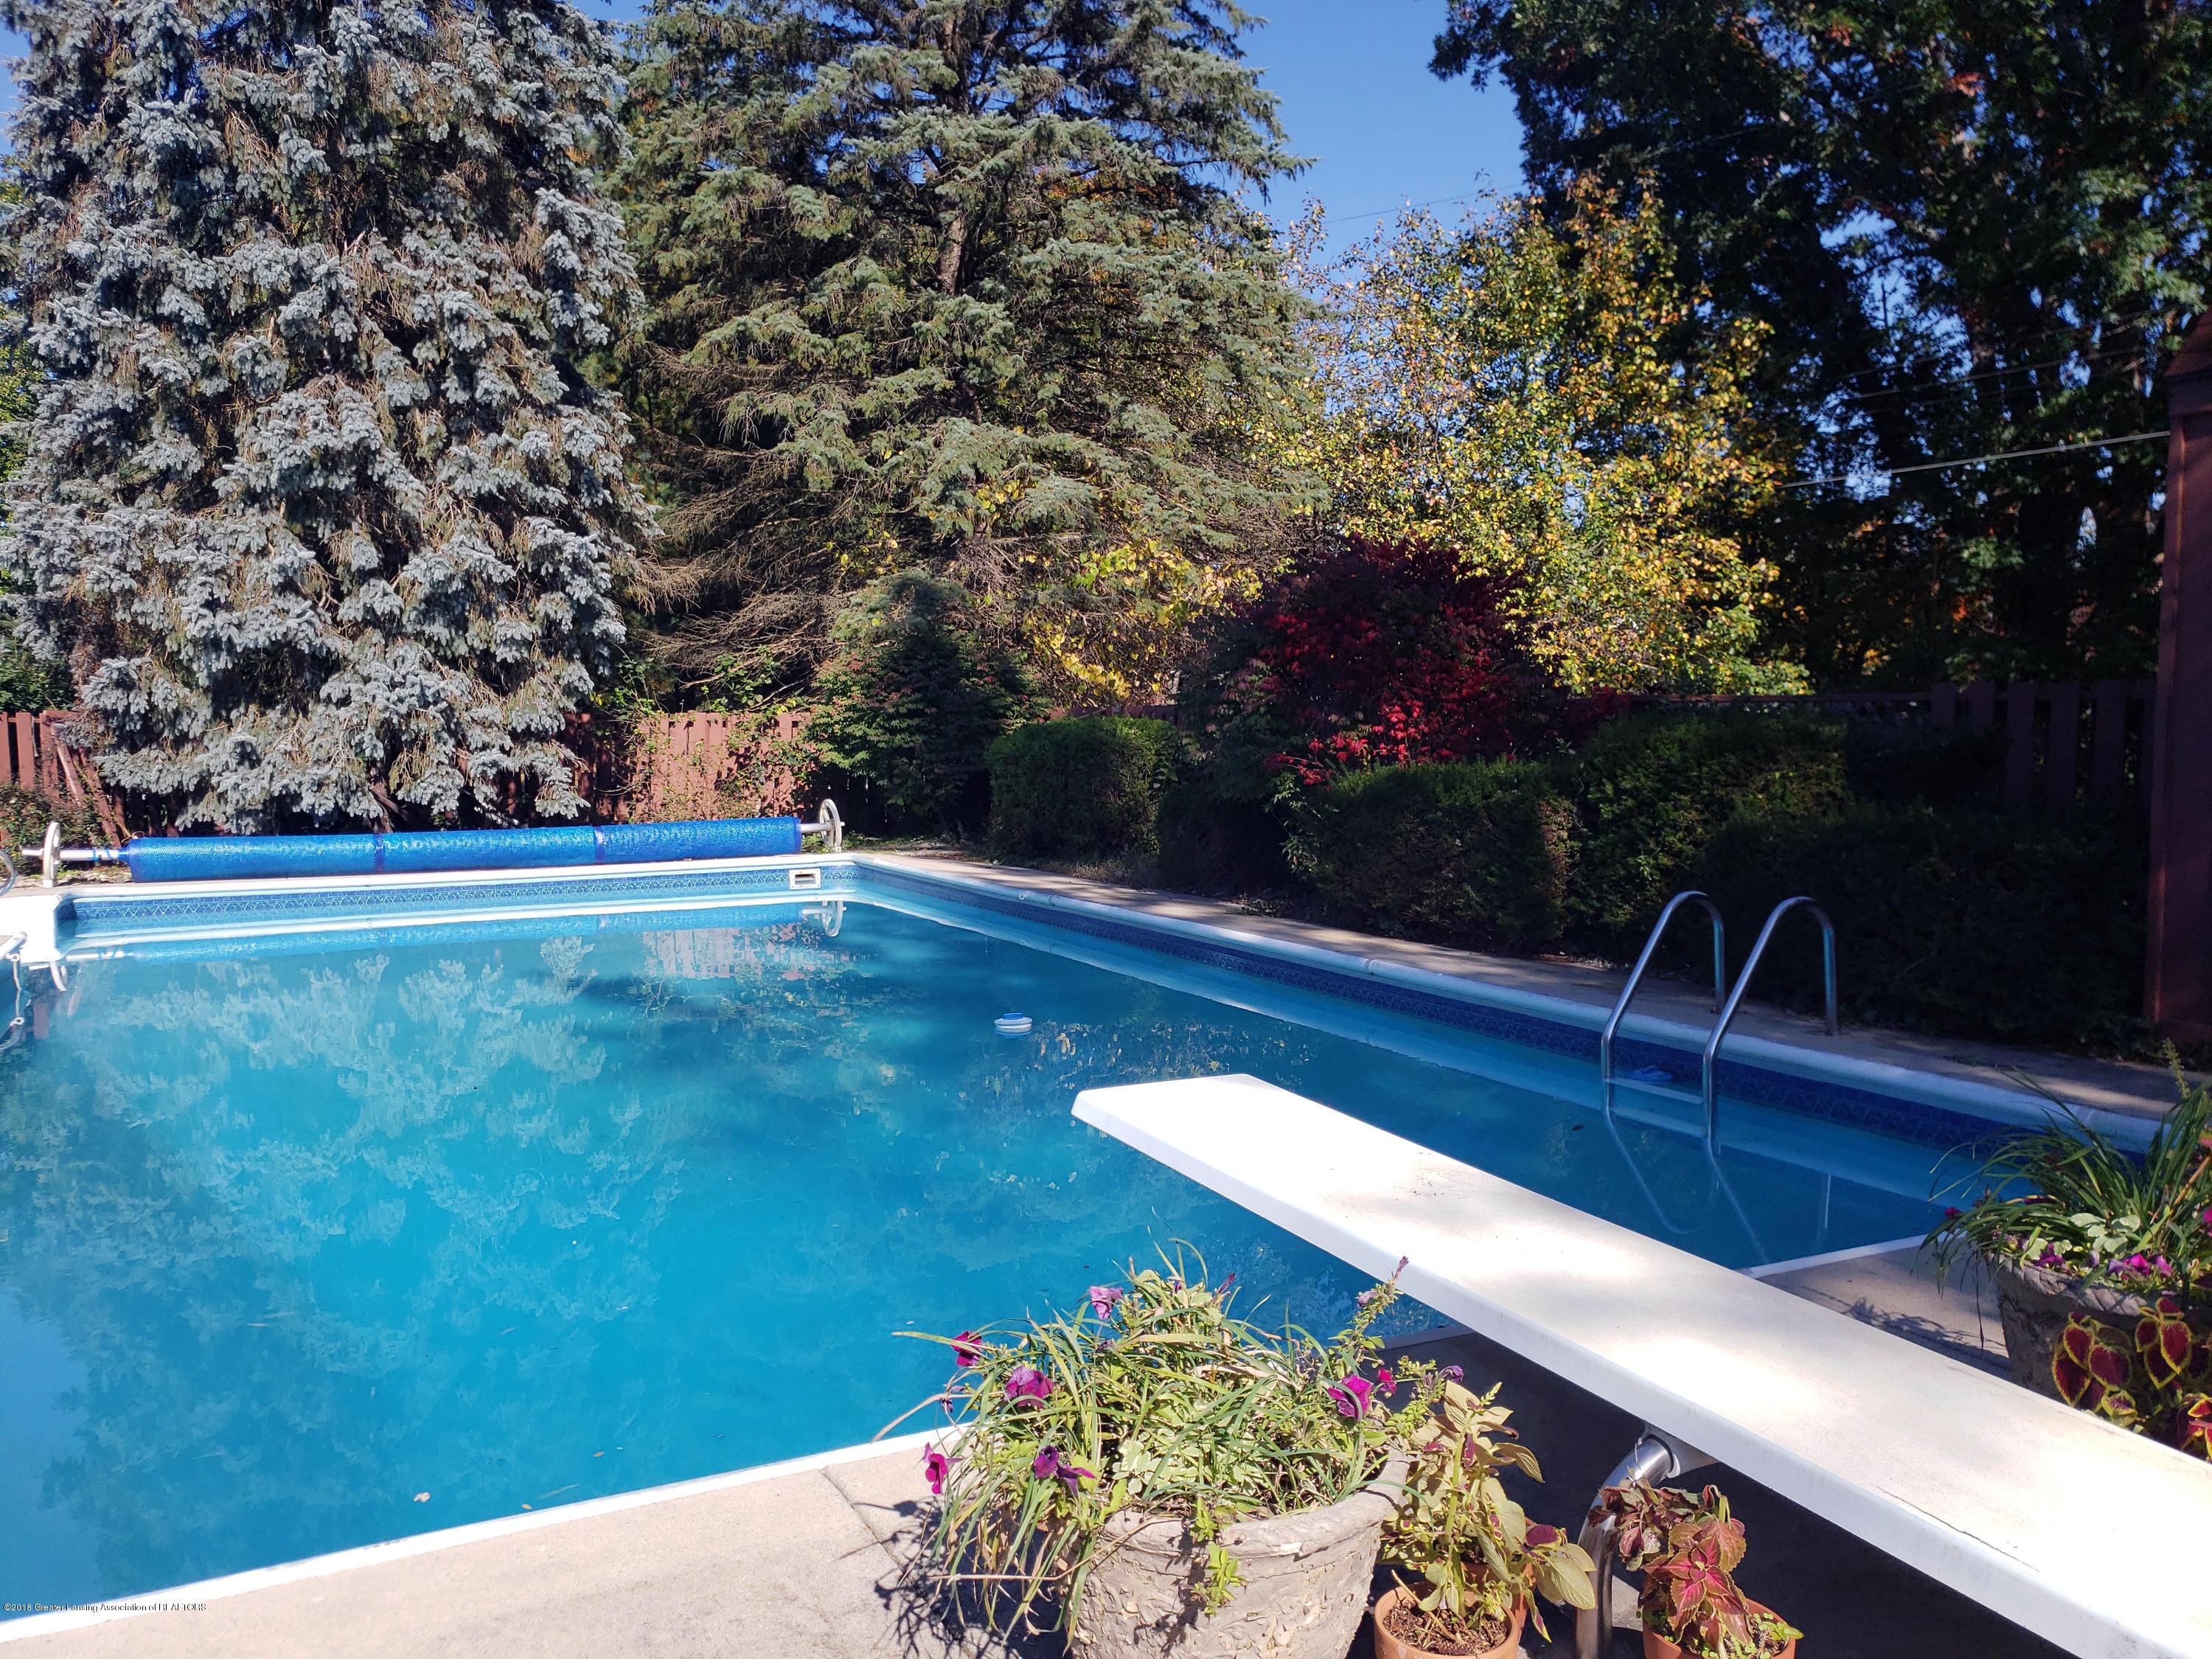 3596 E Hiawatha Dr - 3596 E Hiawatha Pool Diving Board - 27